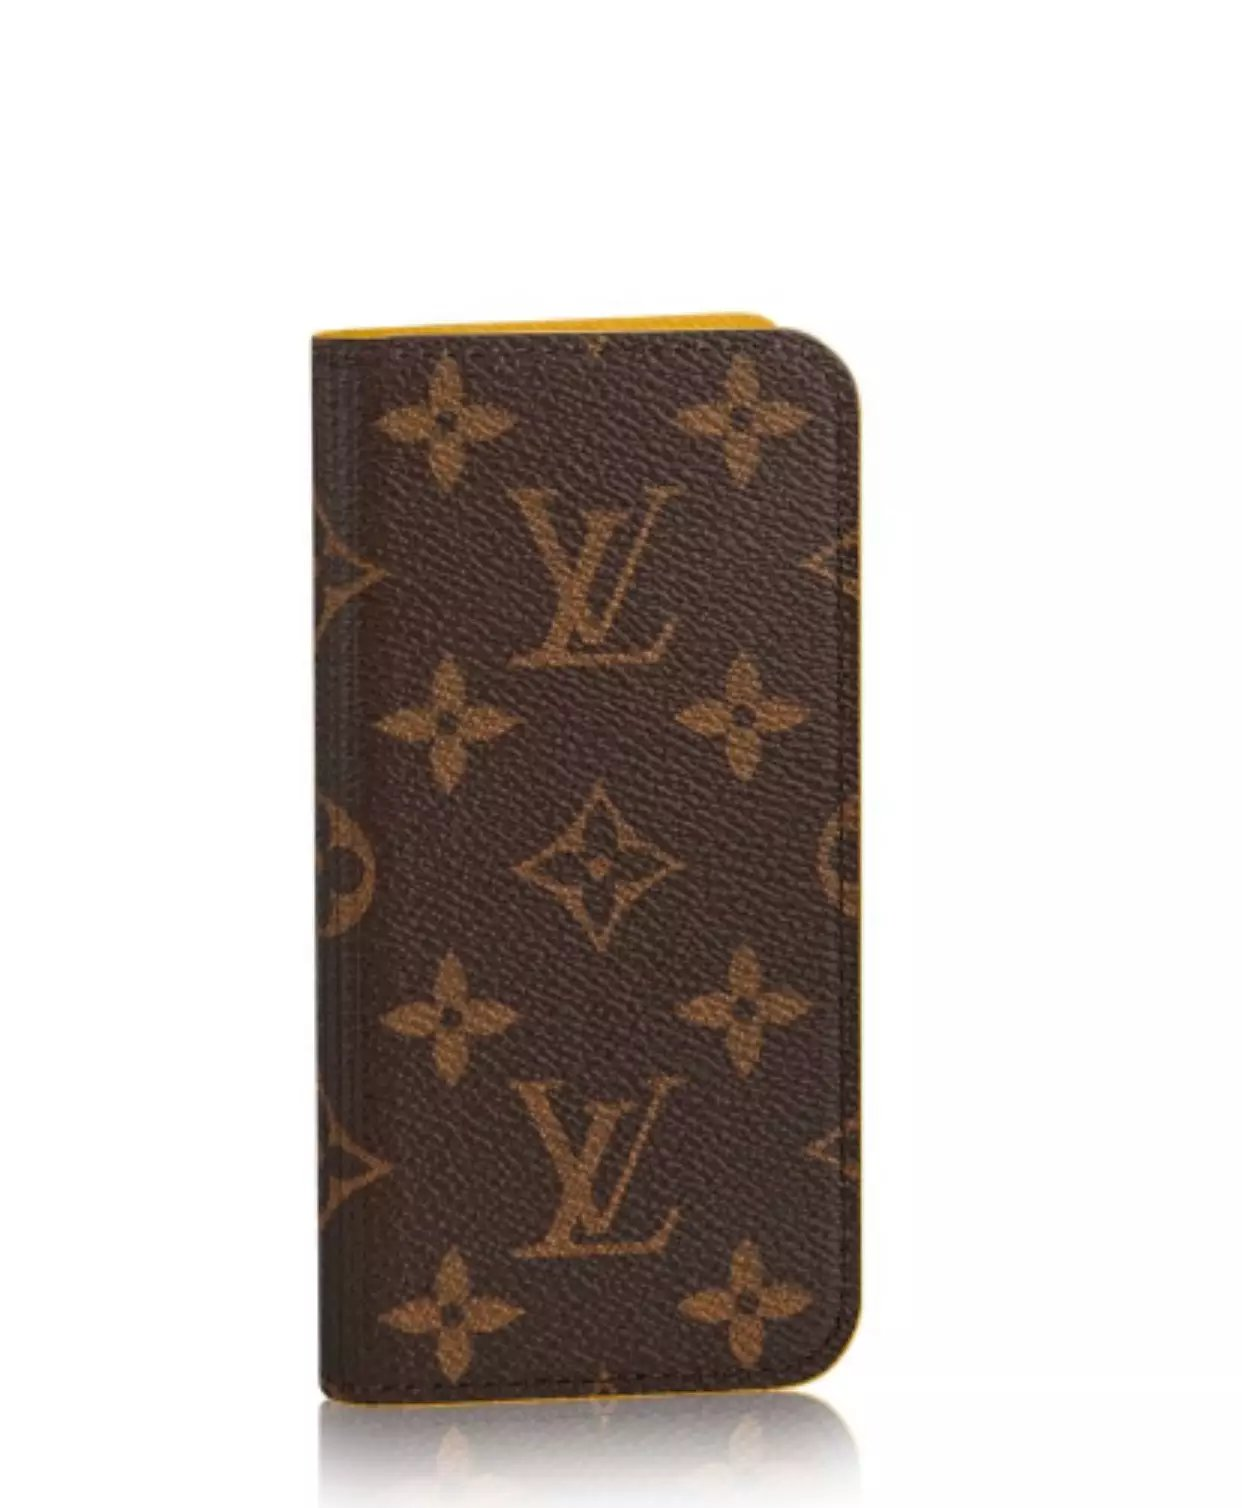 iphone hülle gestalten designer iphone hüllen Louis Vuitton iphone7 hülle akku iphone 6 gute handyhüllen iphone 6 display größe smartphone ca7 7lber machen iphone hülle machen handyhülle bedrucken las7n